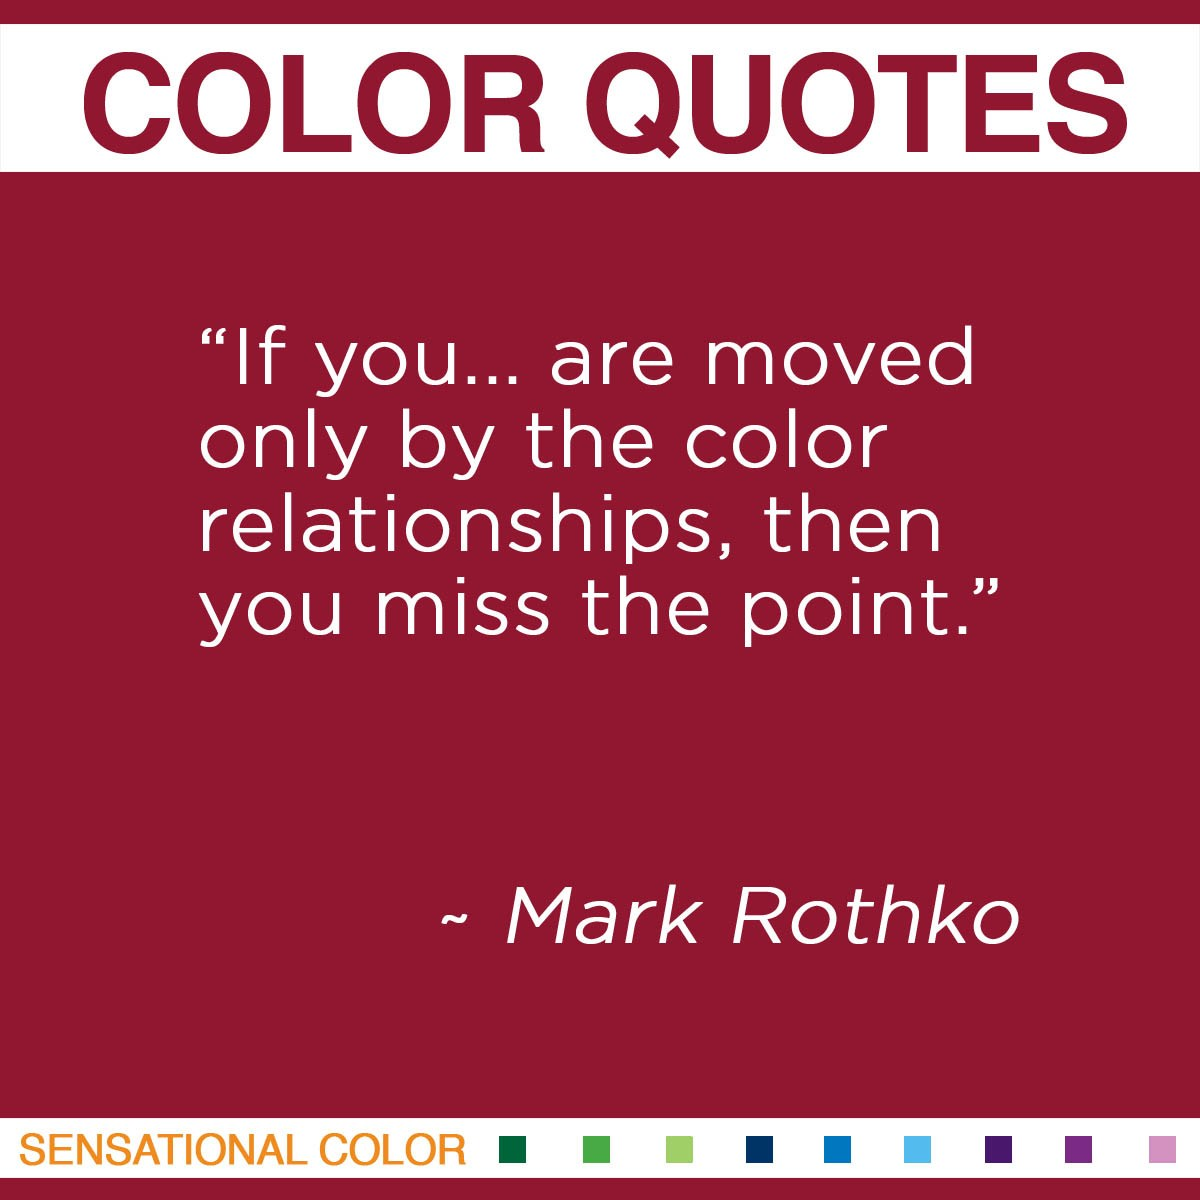 """If you… are moved only by the color relationships, then you miss the point."" - Mark Rothko"